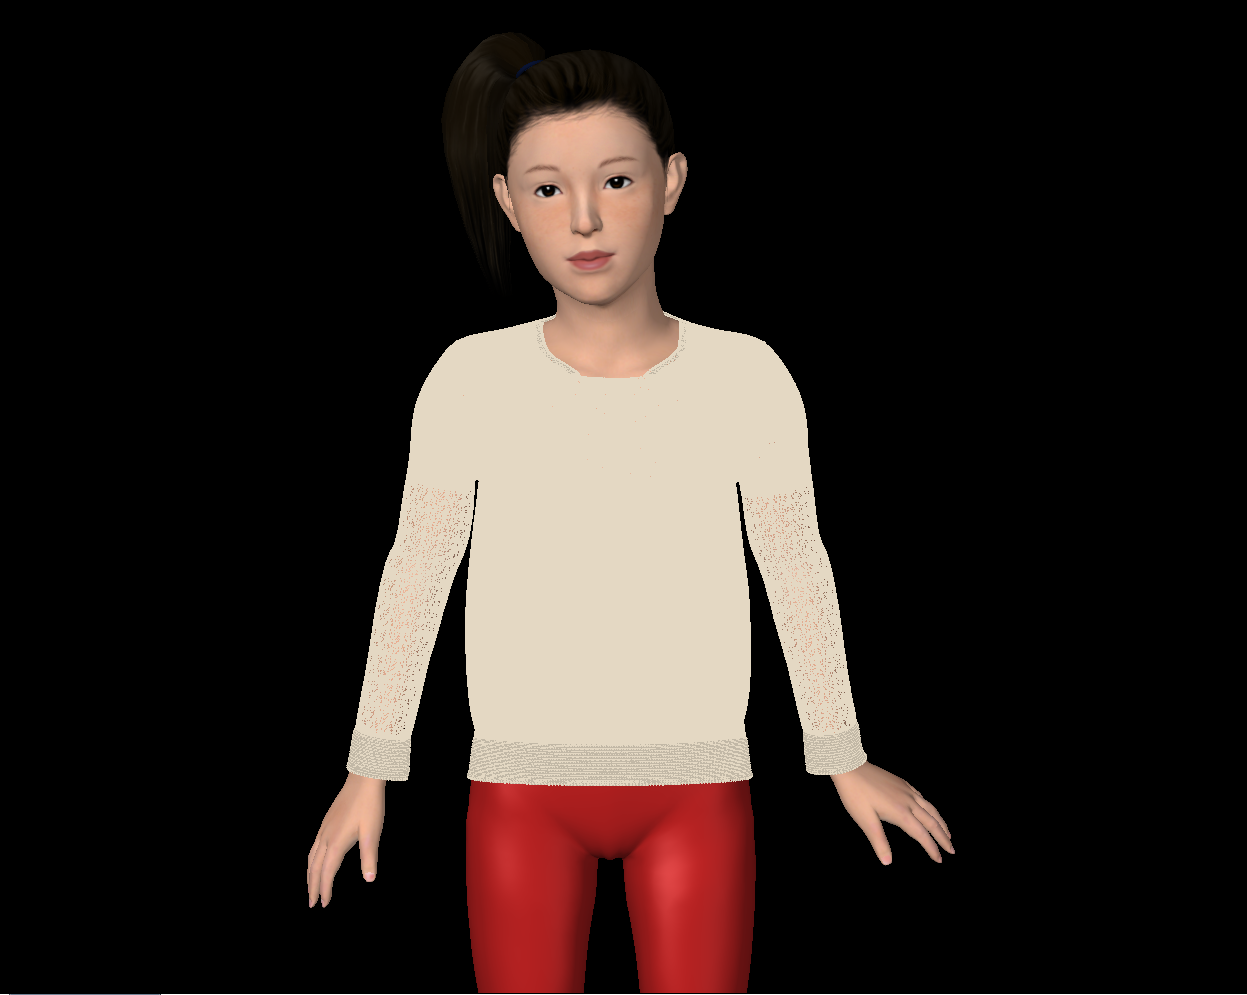 Lady Bug Sweater Fit Simulation